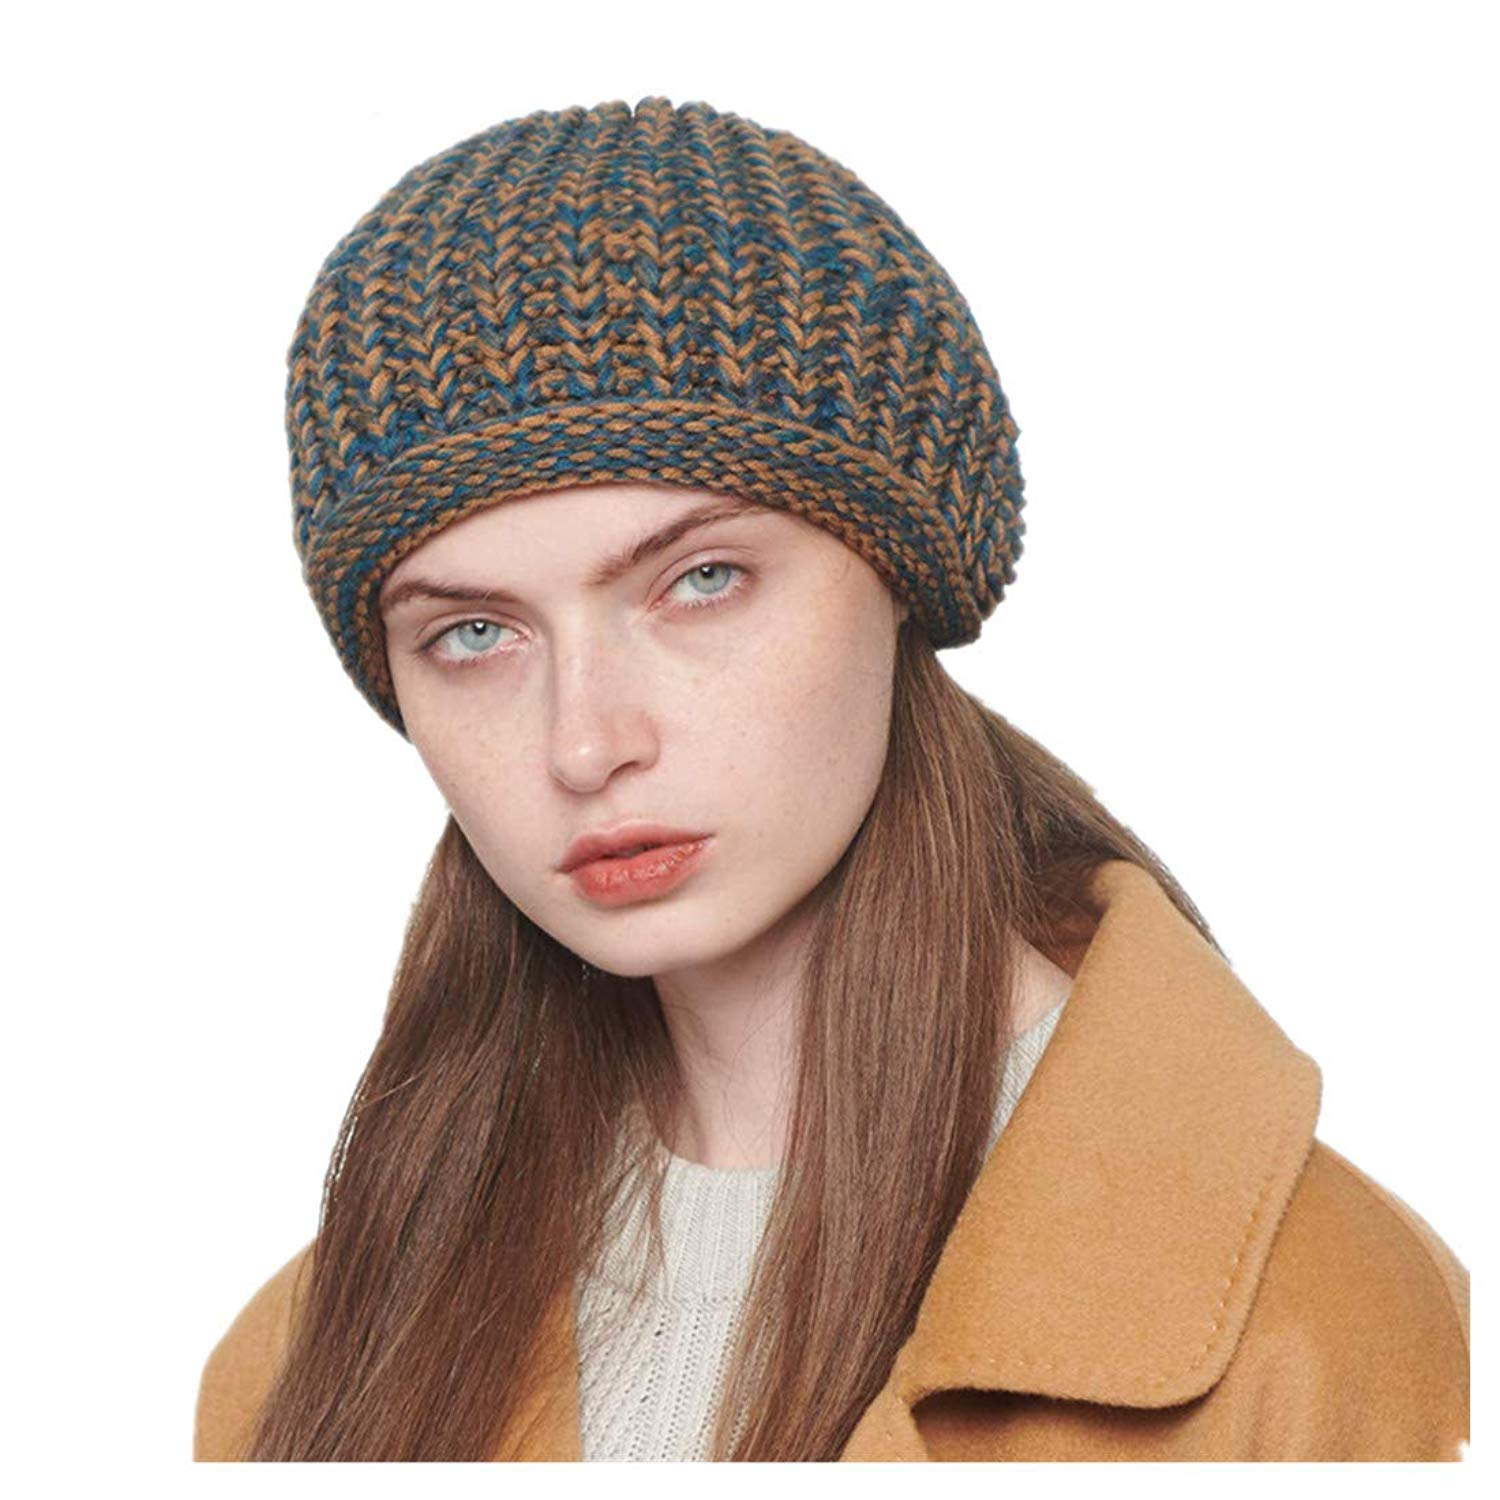 295b1c9f6fb Get Quotations · Globalwells Women Winter Knitted Beret Cap Newsboy Flat hat  Beanie Slouchy Baggy Skull Cap